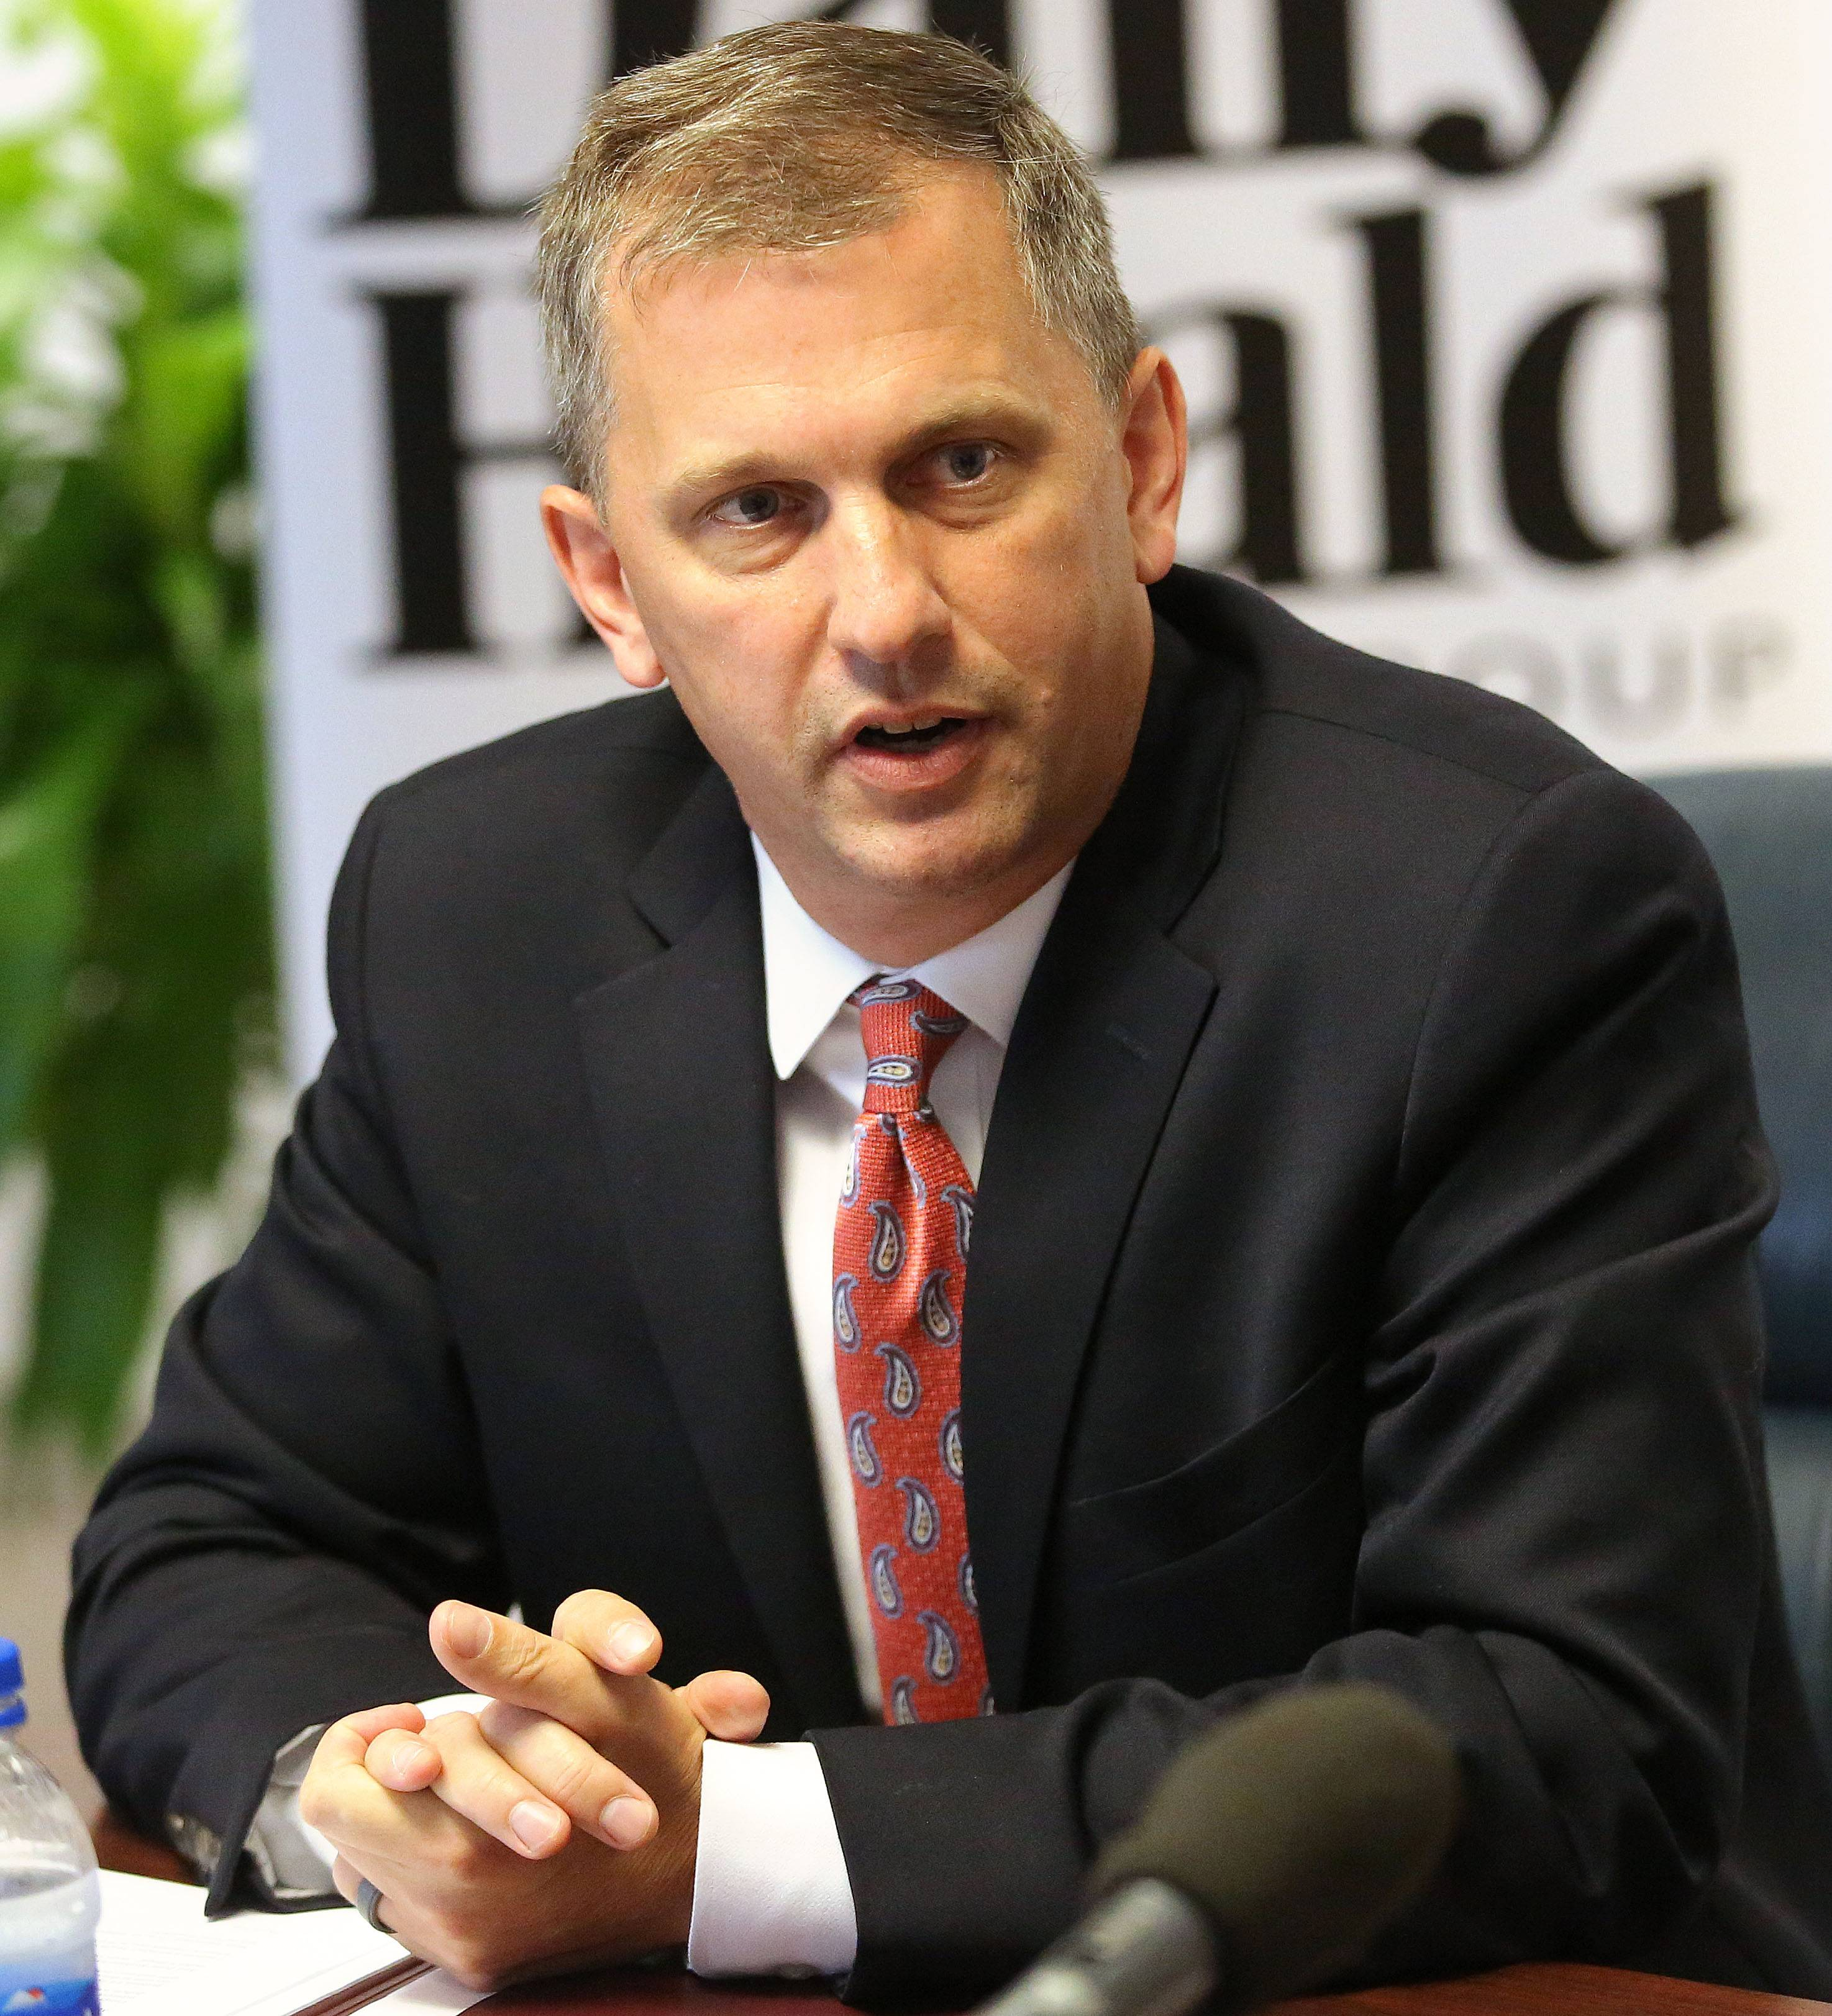 Democrat Sean Casten of Downers Grove, who is running in the 6th Congressional District, expresses concerns about recent tax code changes during a meeting with the Daily Herald editorial board Monday.